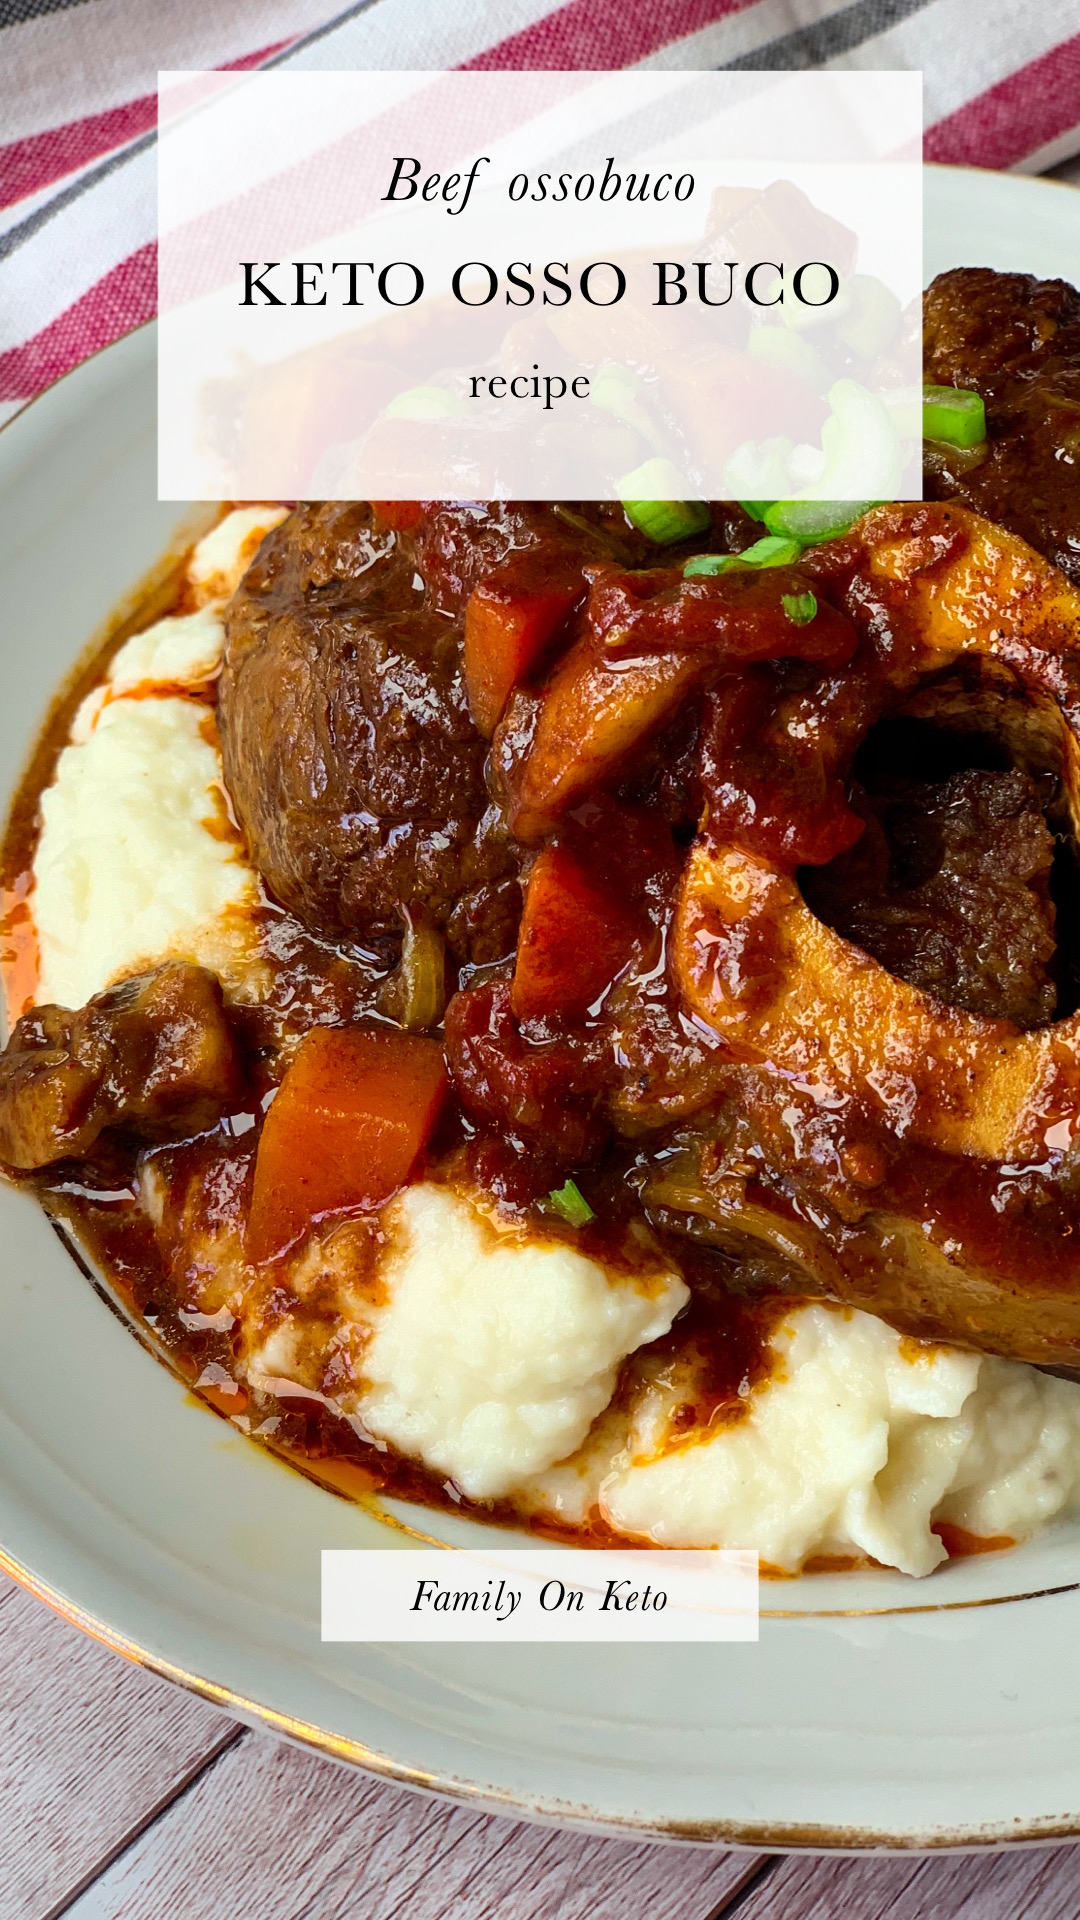 Keto beef ossobuco in keto vegetable stew and low carb cauliflower mash